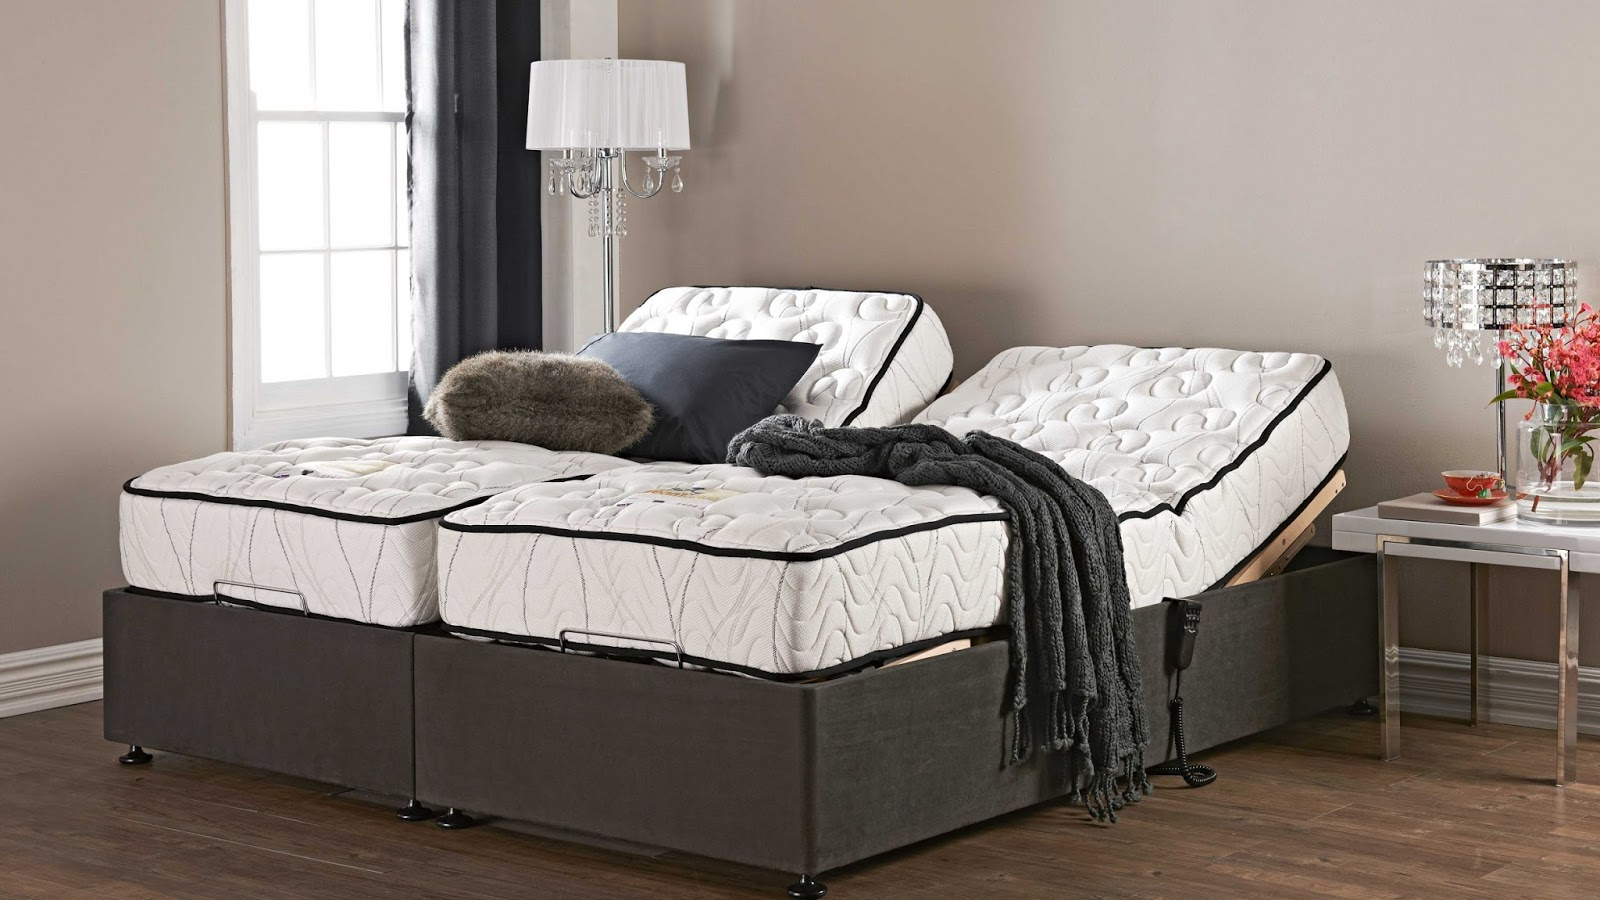 Adjustable Mattress Preferences